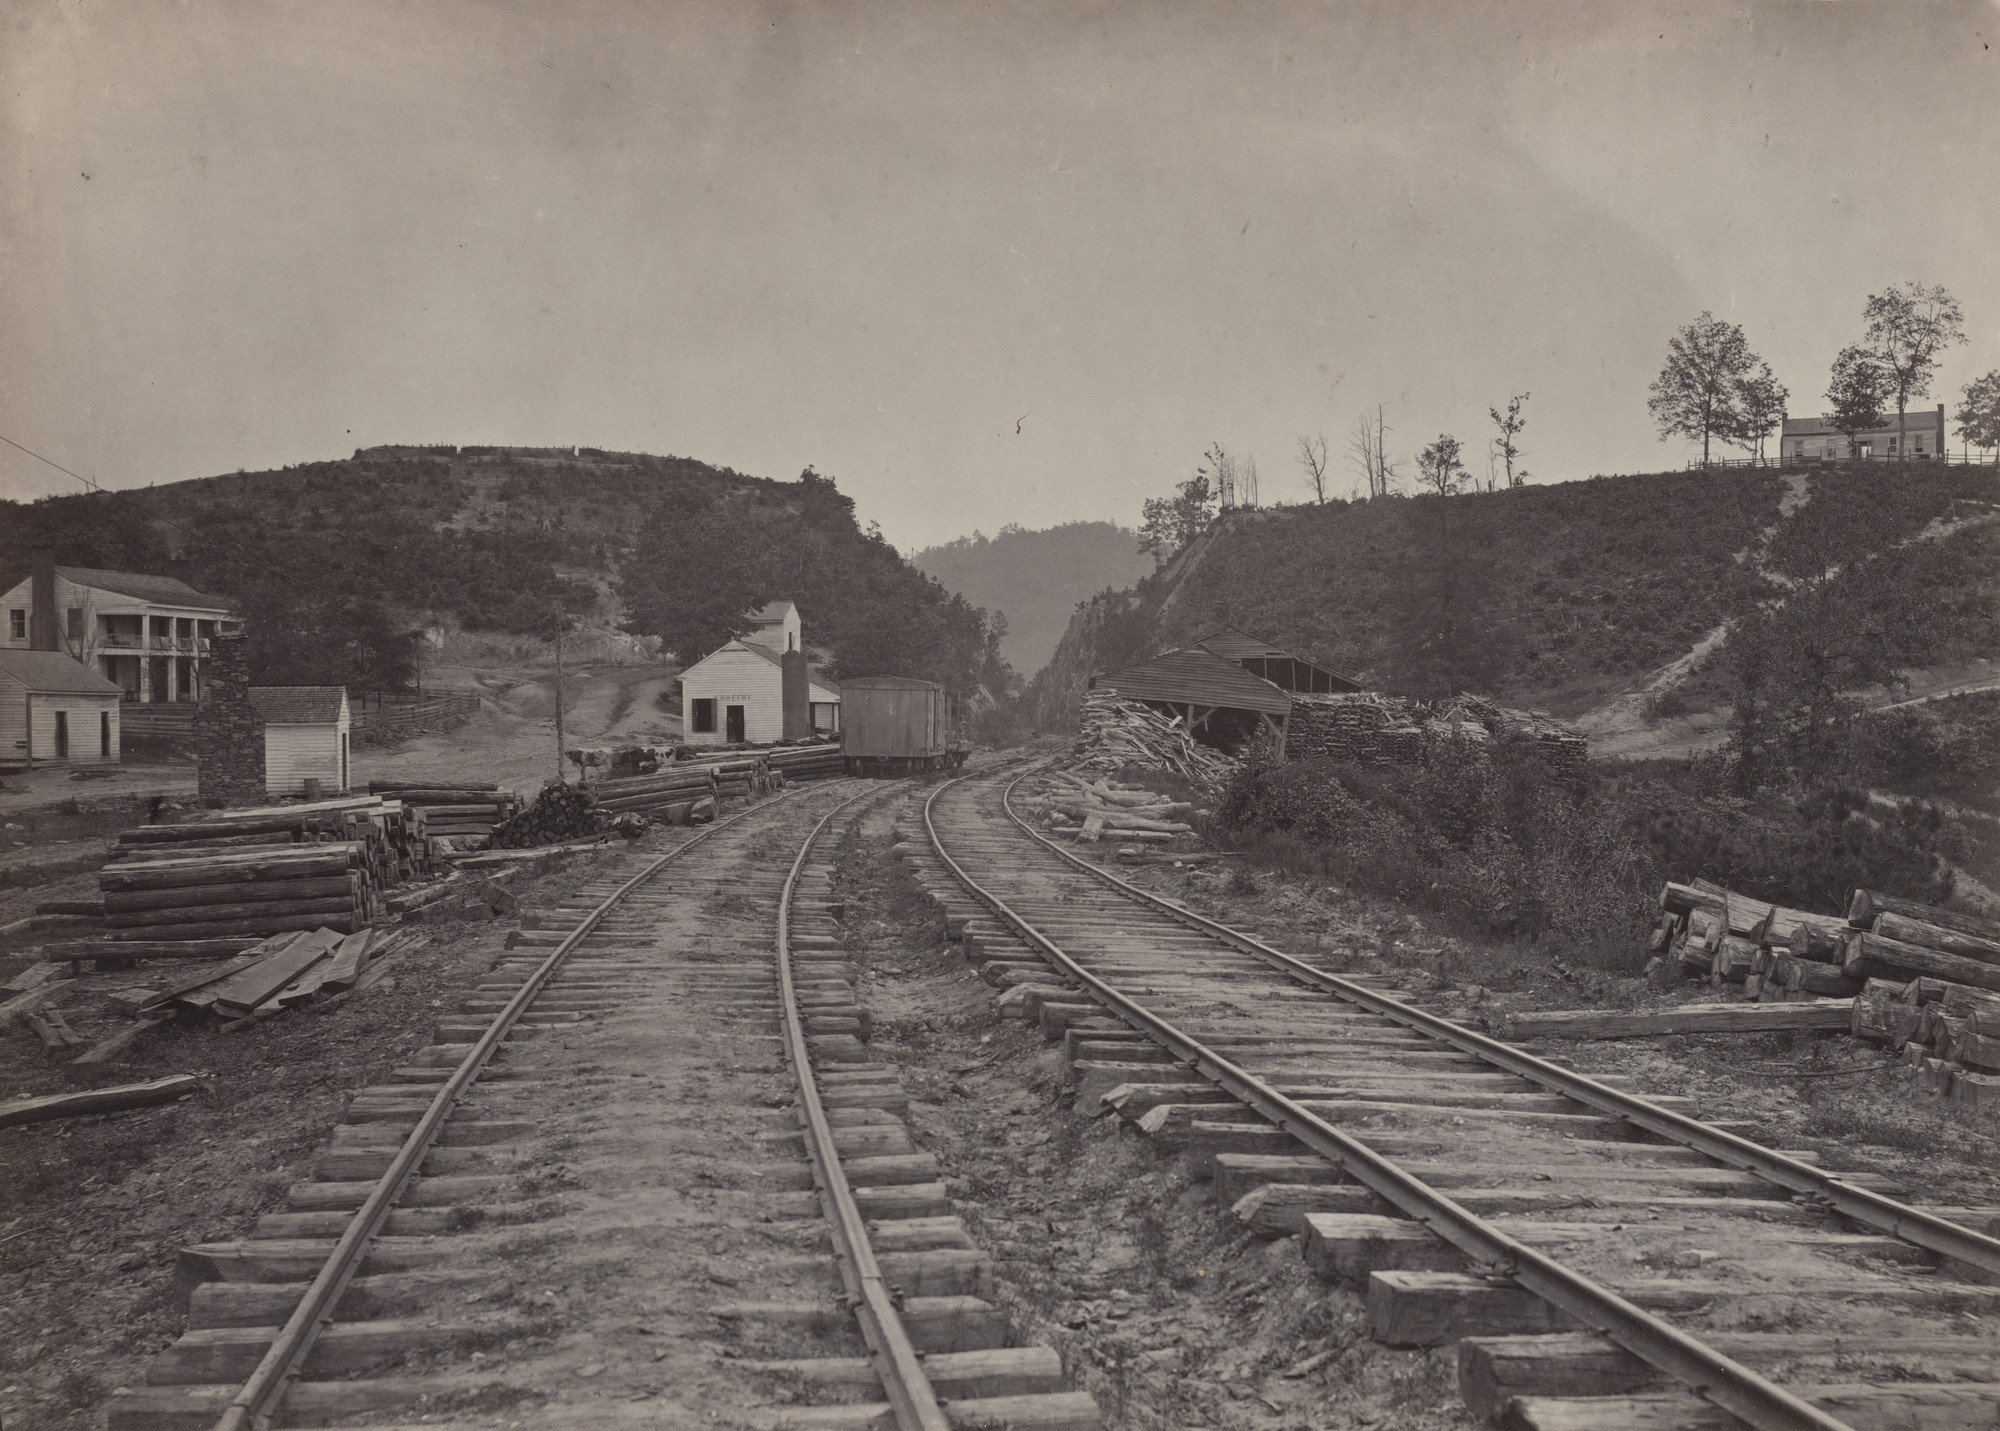 George Barnard. The Allatoona Pass, looking North from the album Photographic Views of Sherman's Campaign. 1864-65